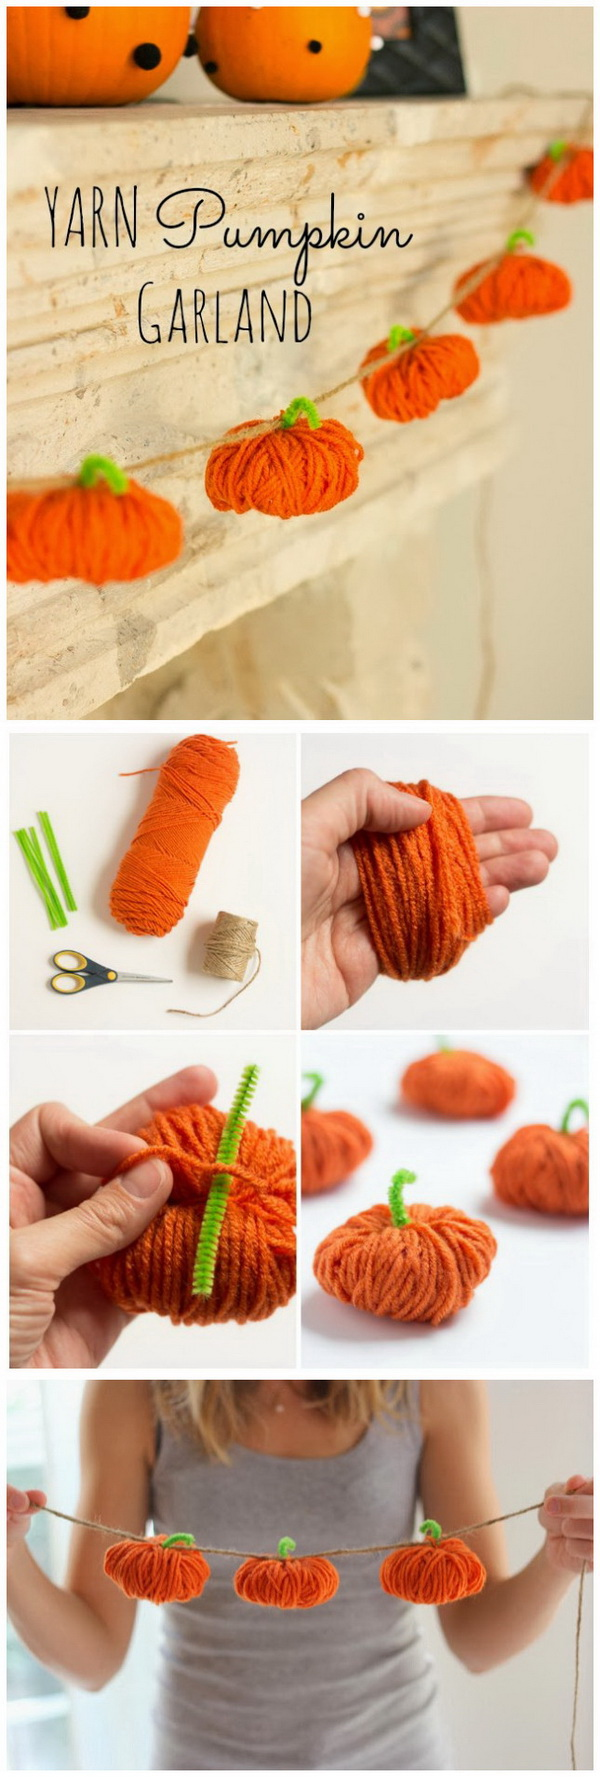 50+ DIY Fall Crafts \u0026 Decoration Ideas That Are Easy and